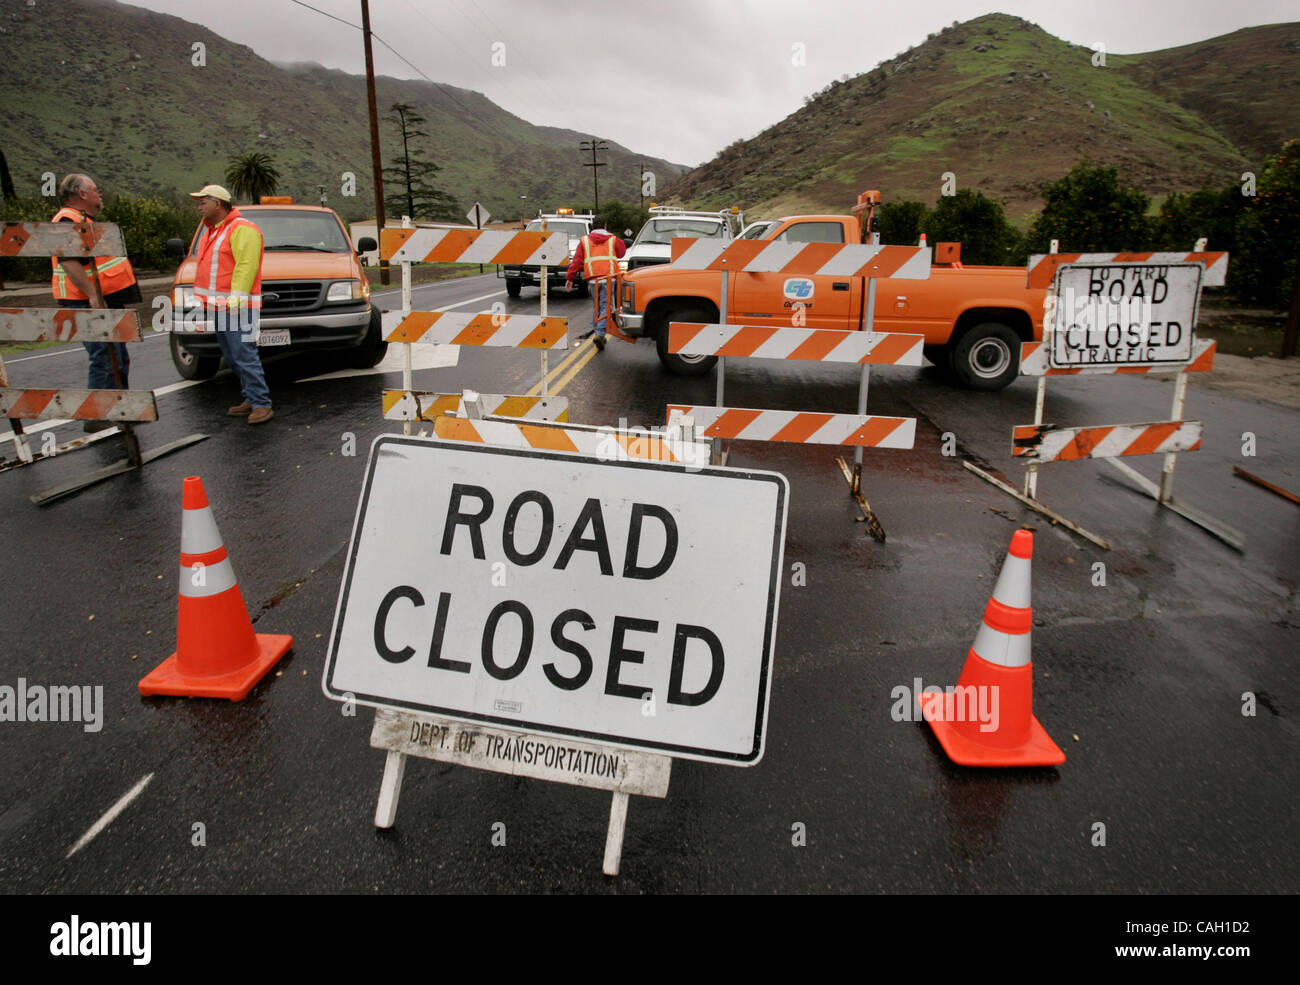 Caltrans Jpg Stock Photos & Caltrans Jpg Stock Images - Alamy